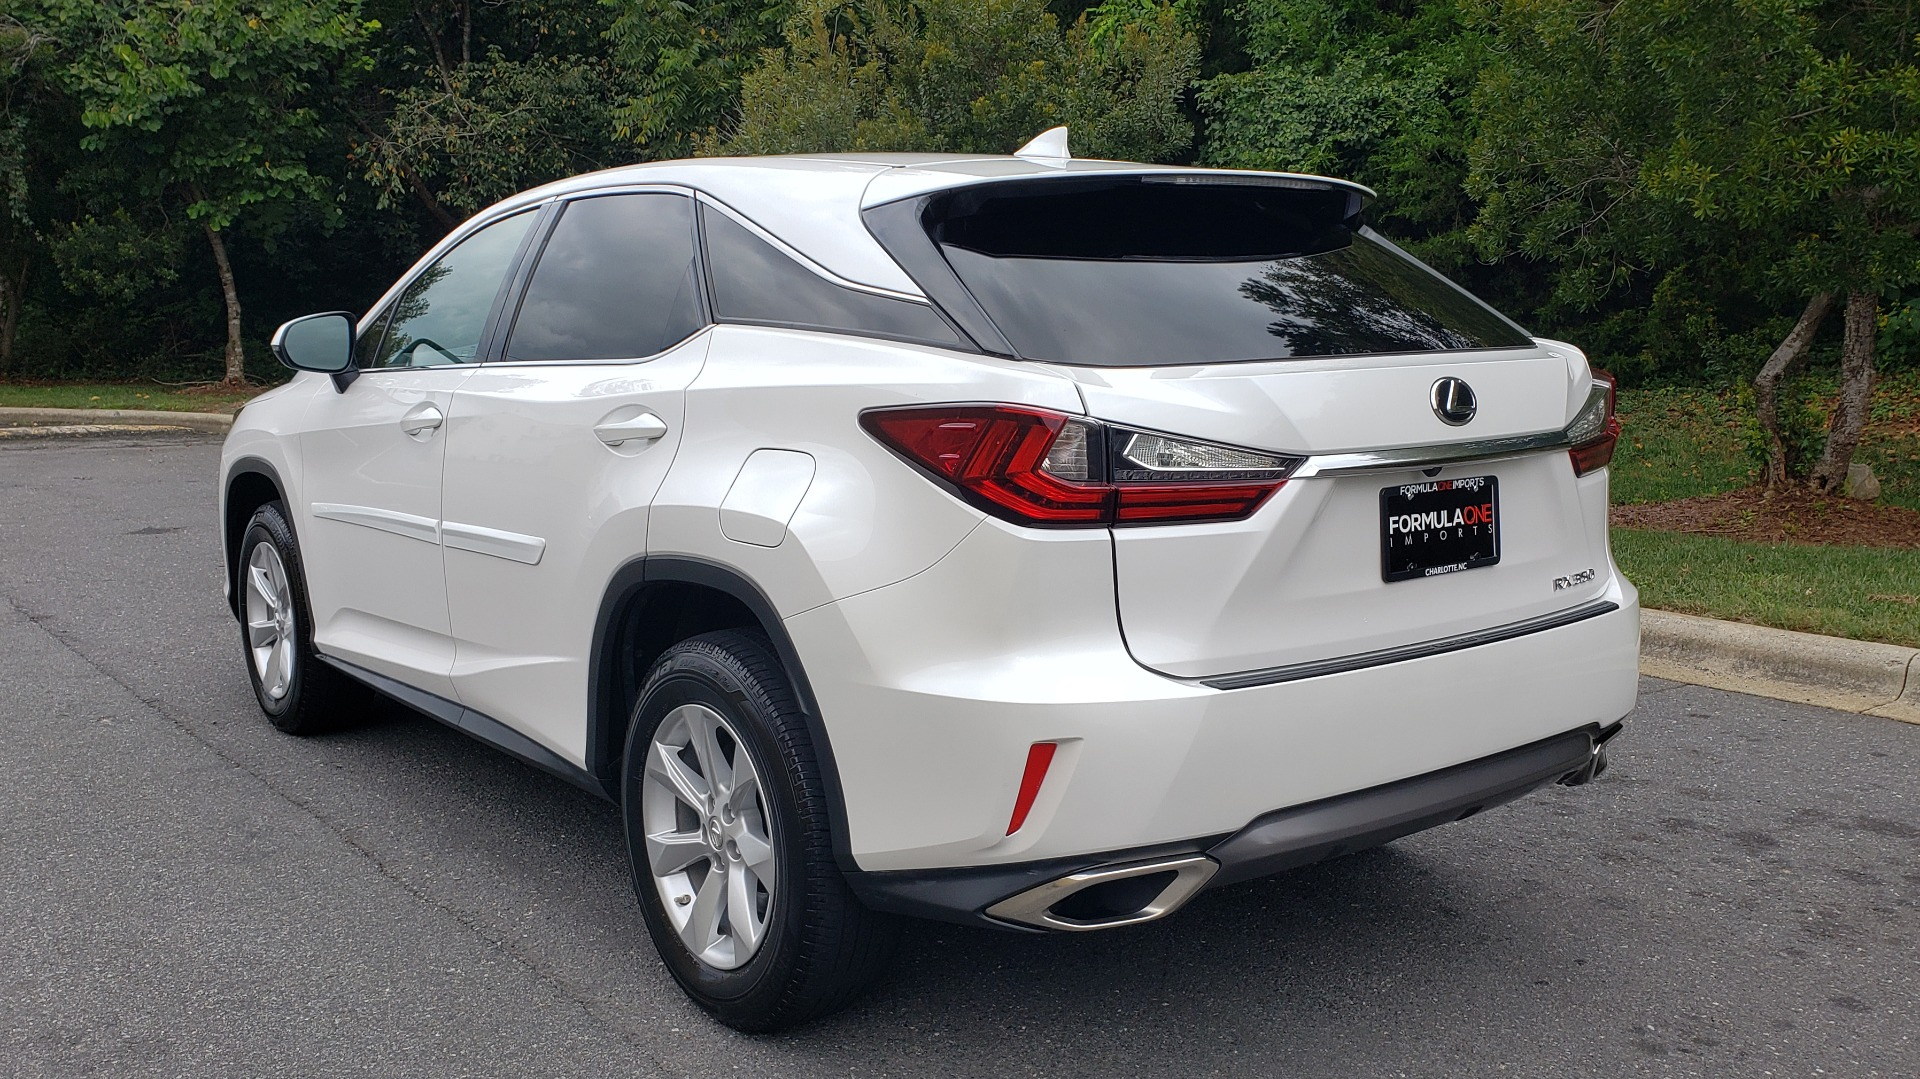 Used 2016 Lexus RX 350 FWD / 4-DR / 3.5L V6 / 8-SPD AUTO / LEATHER / REARVIEW for sale $31,995 at Formula Imports in Charlotte NC 28227 6